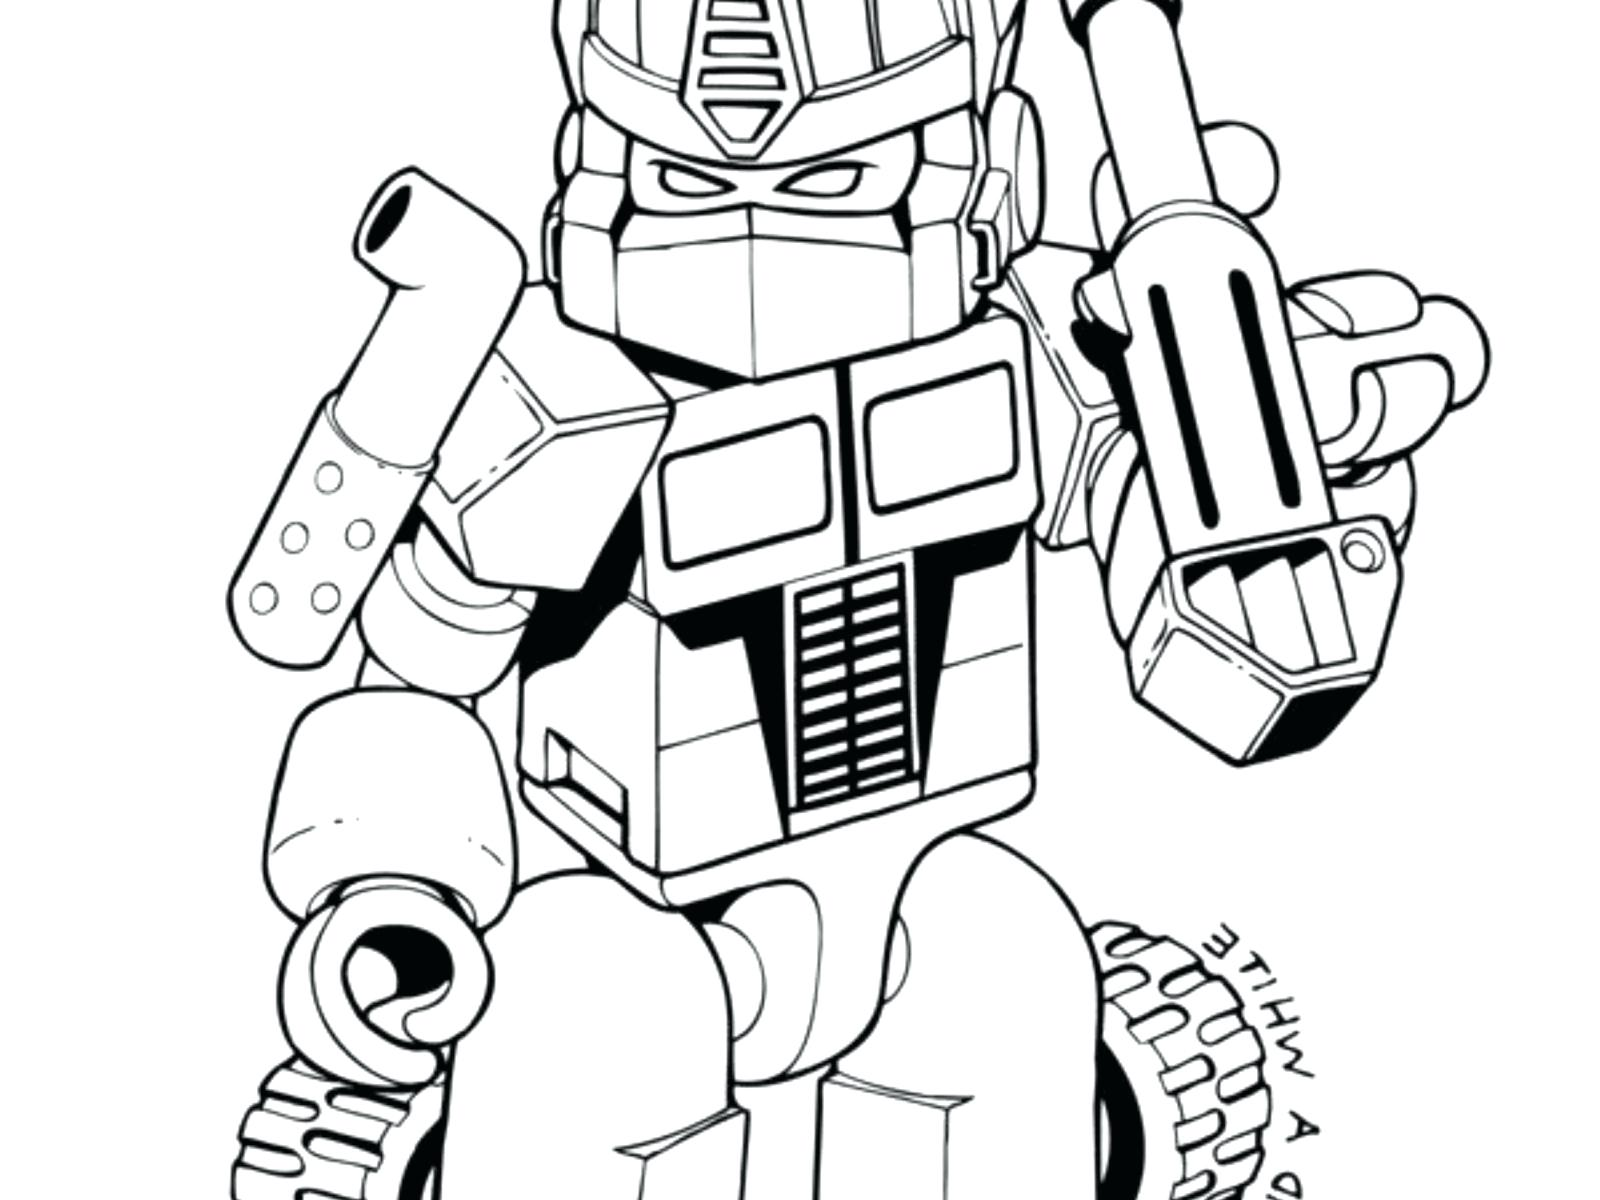 Transformers Cartoon Drawing at GetDrawings.com | Free for personal ...